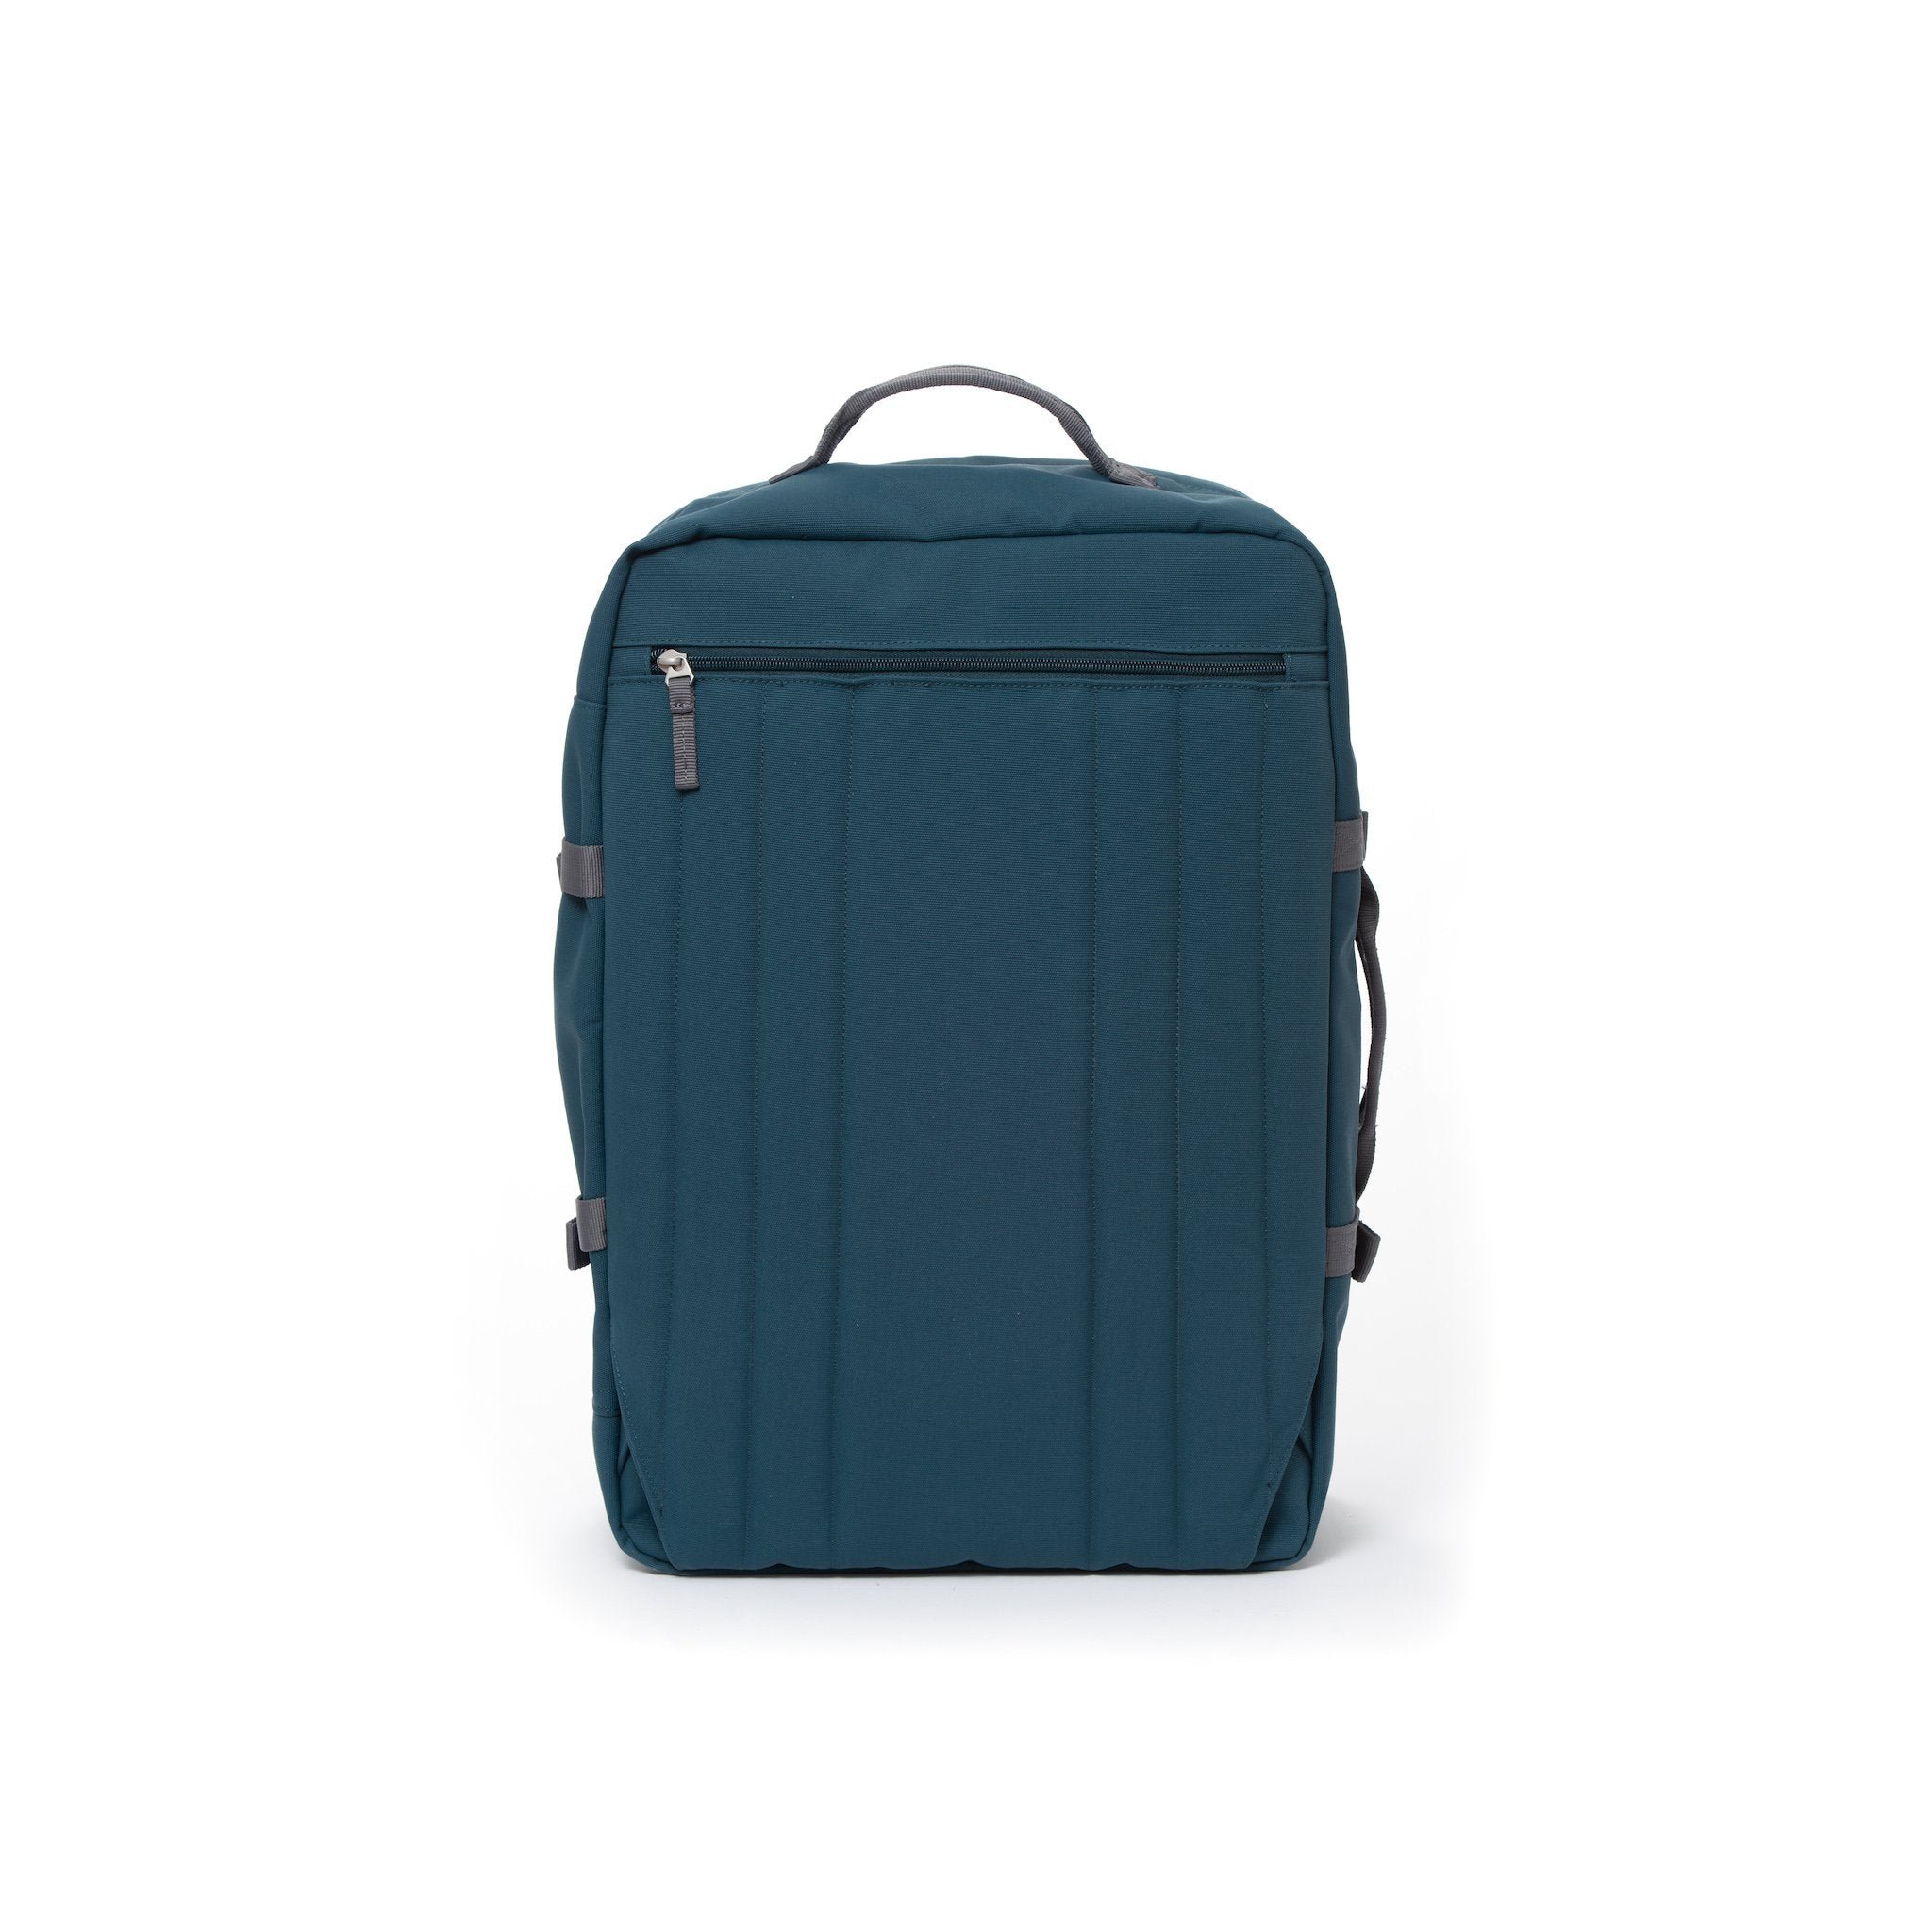 Blue travel backpack with hidden shoulder straps.